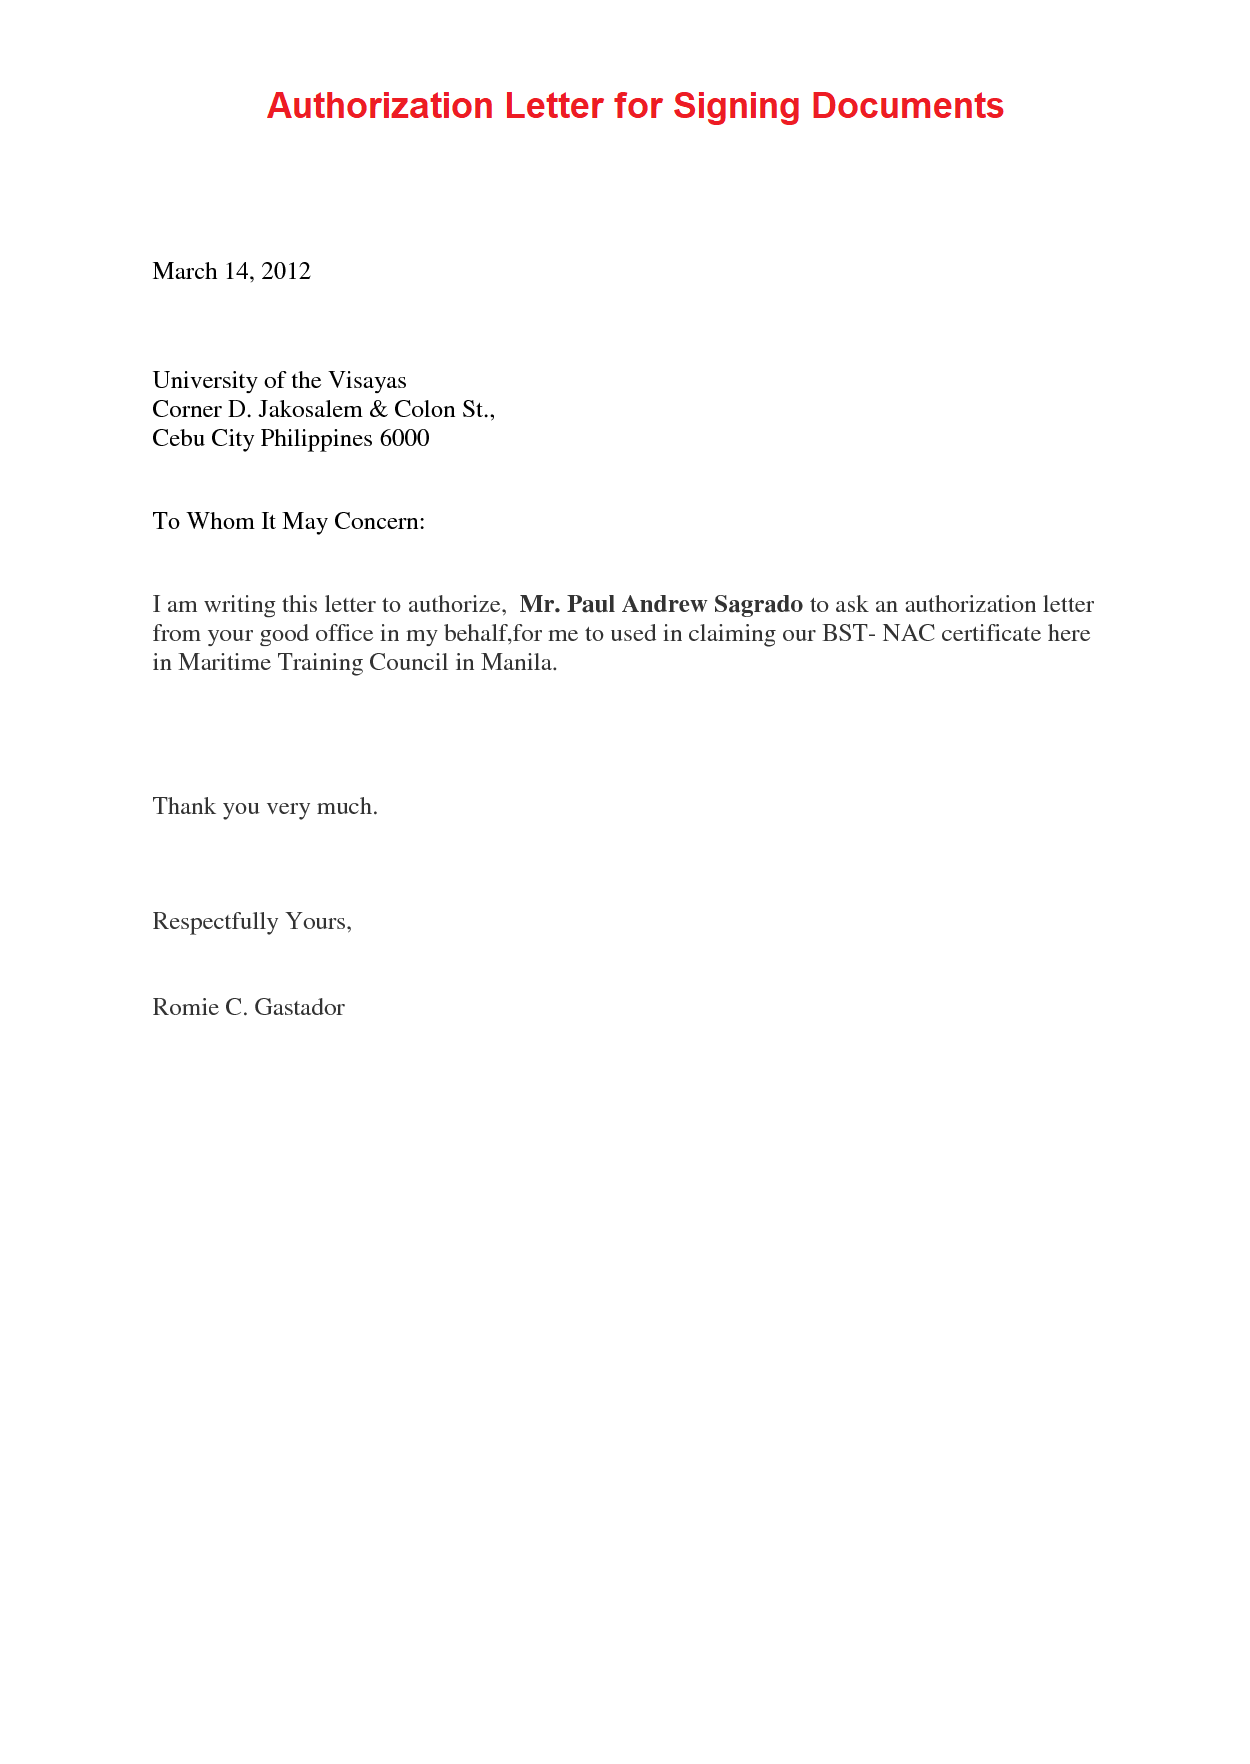 Authorization Letter for Signing Documents